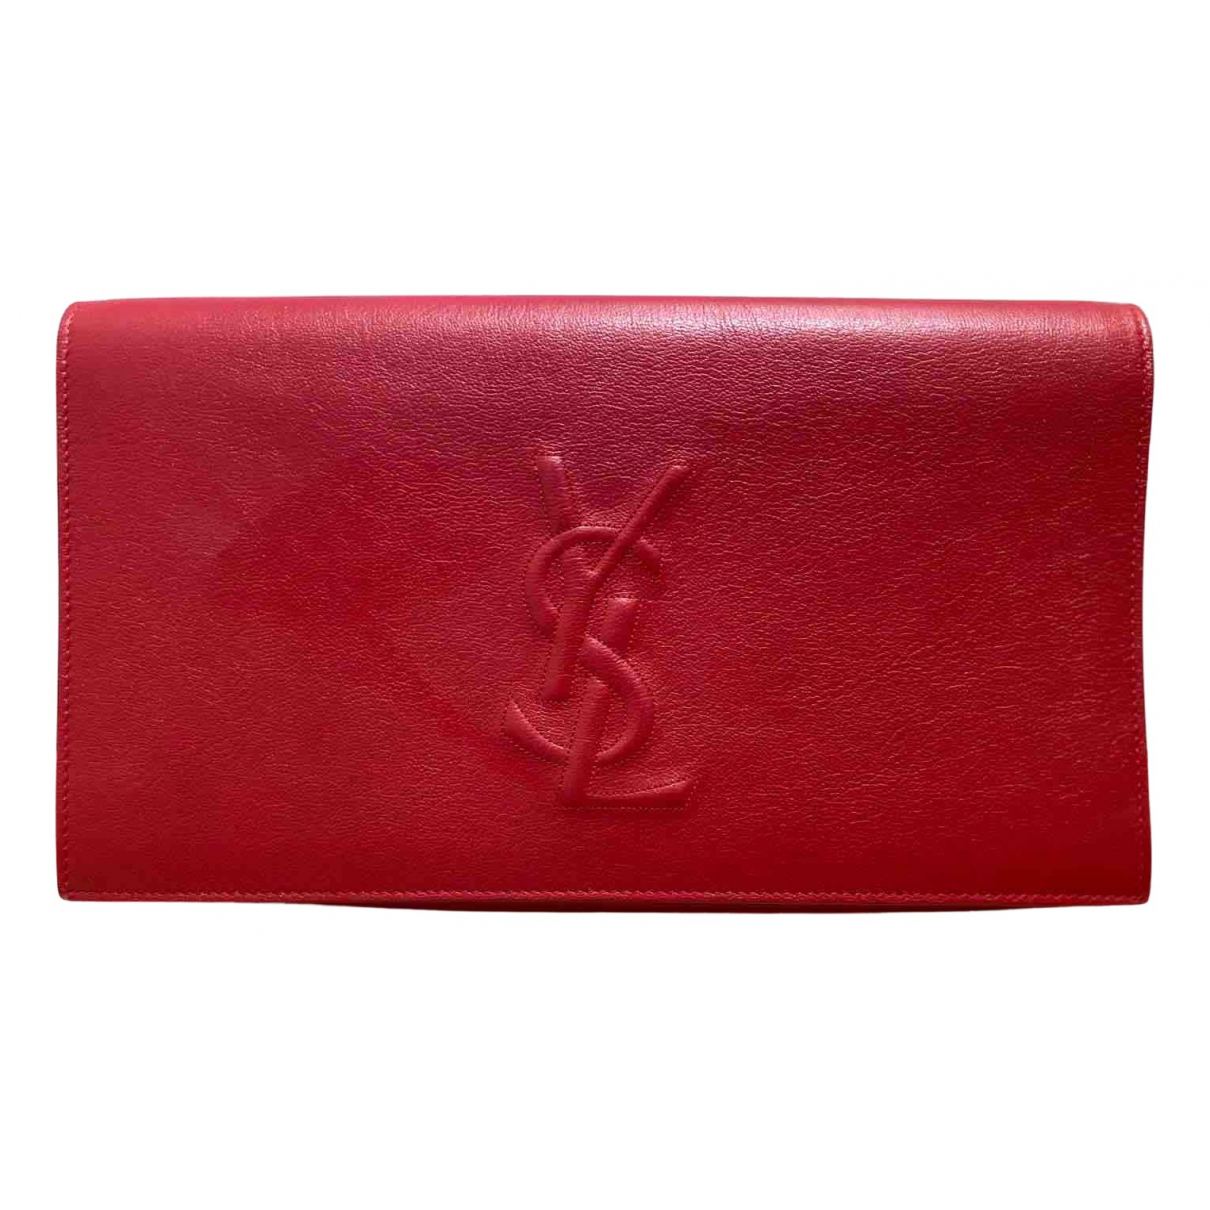 Yves Saint Laurent Belle de Jour Red Leather Clutch bag for Women N